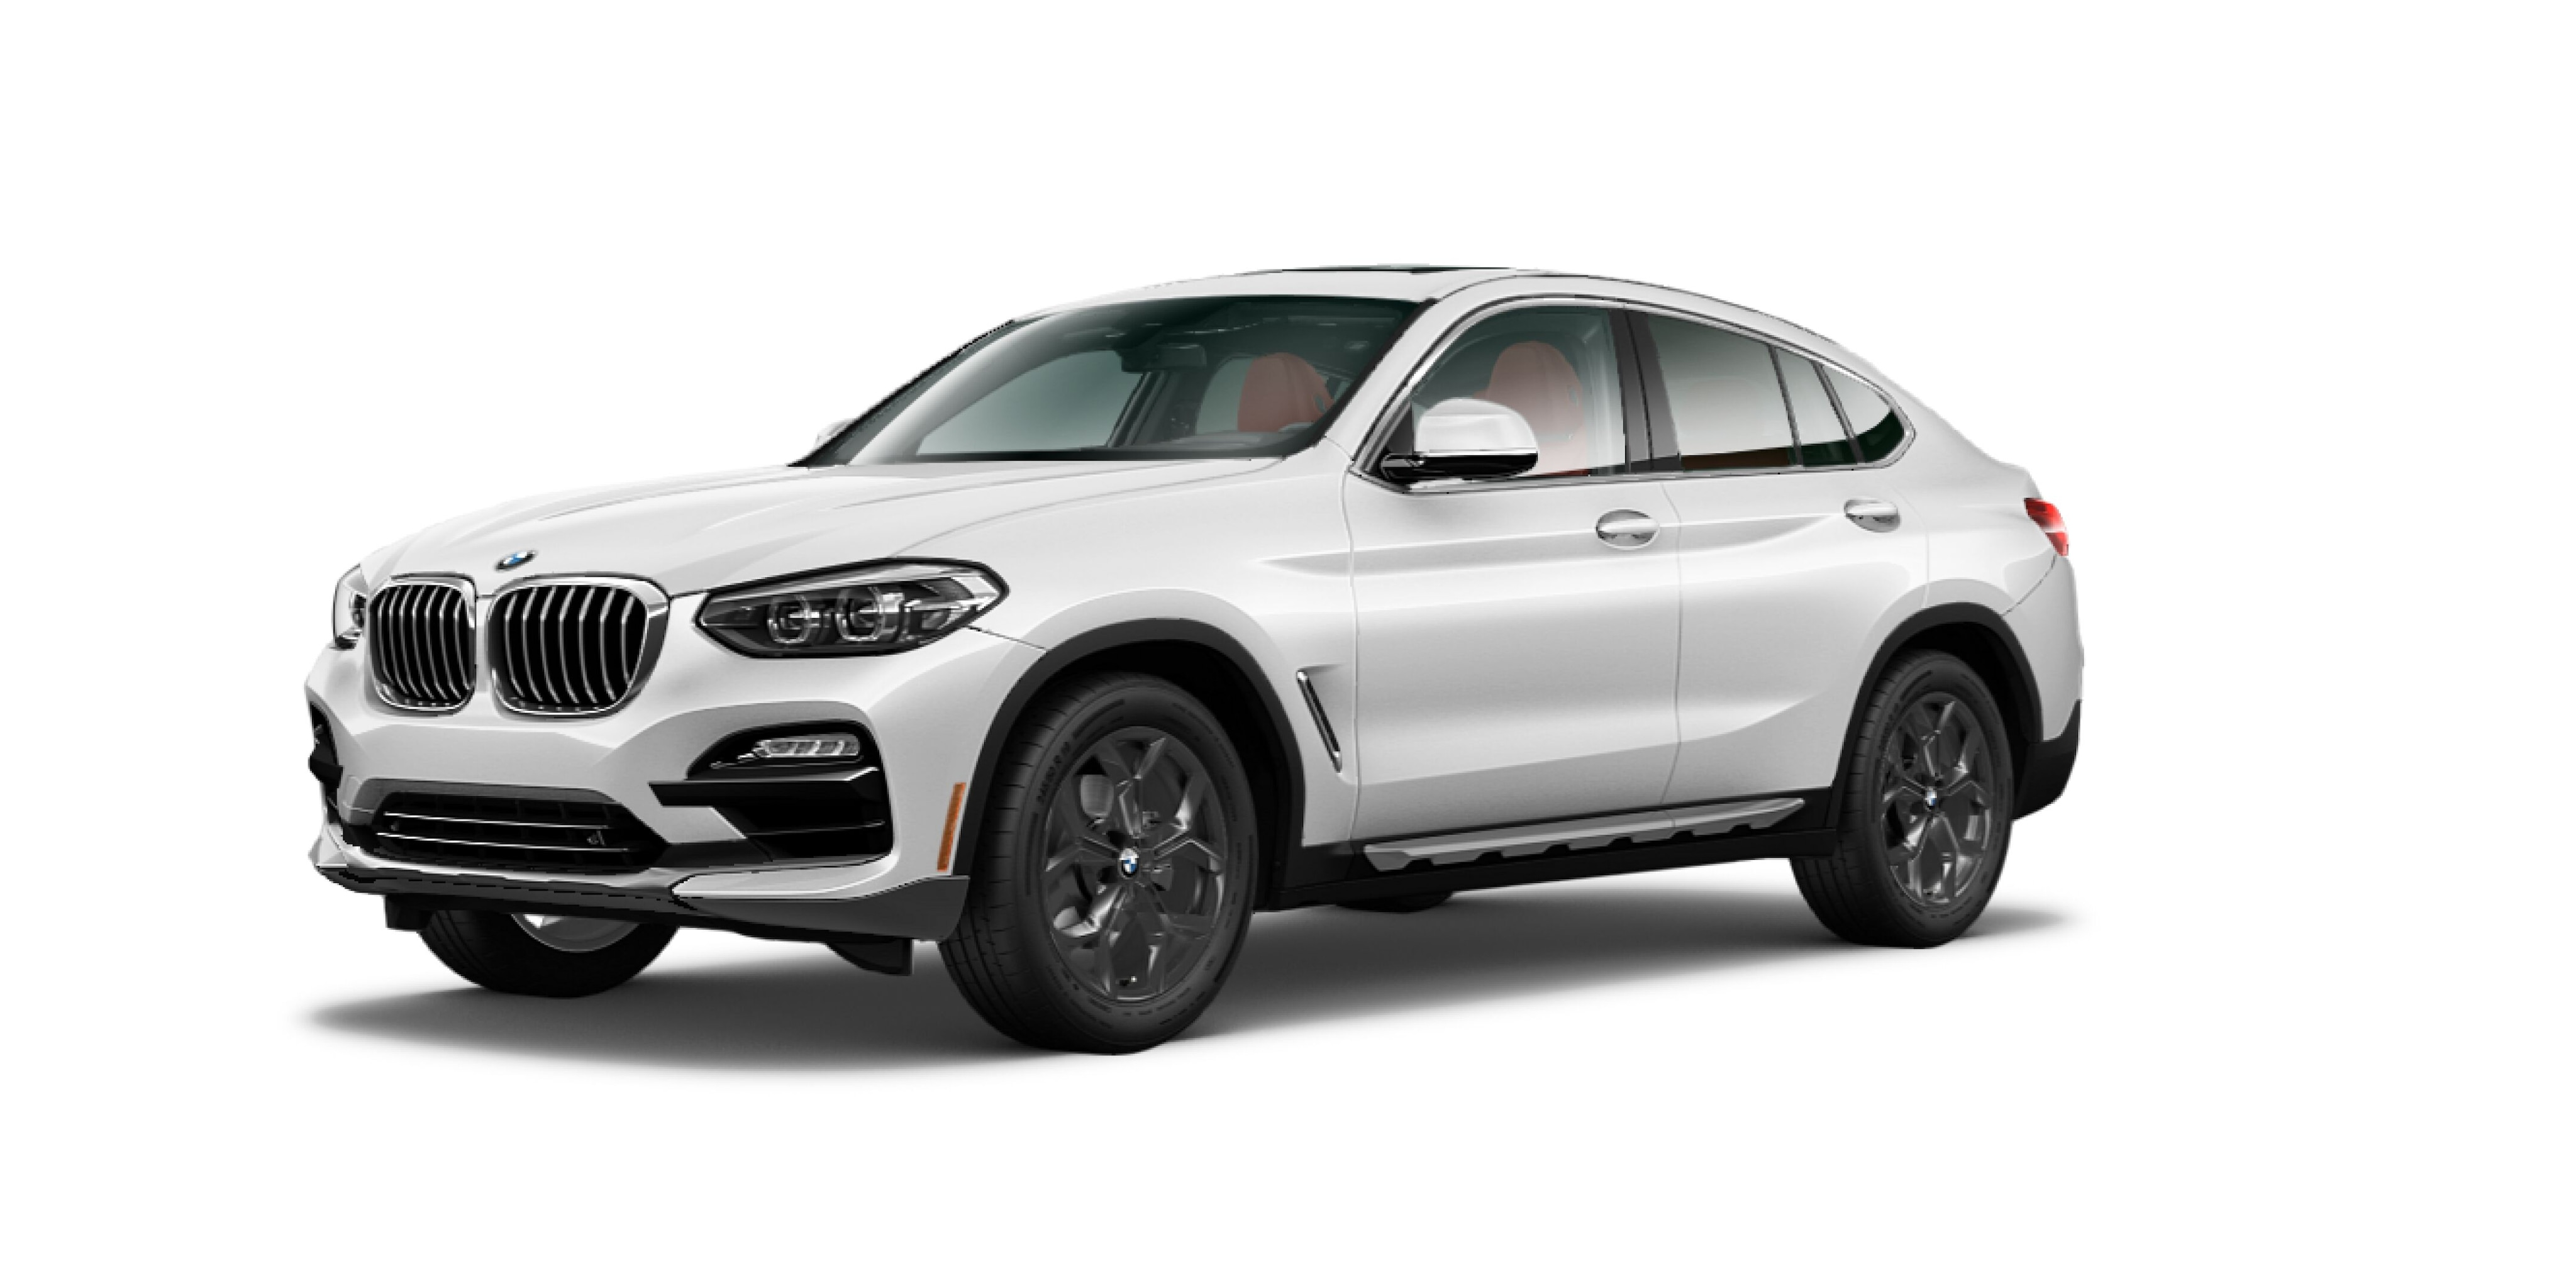 new 2021 bmw x4 for sale in mount laurel nj  vin xdrive30i